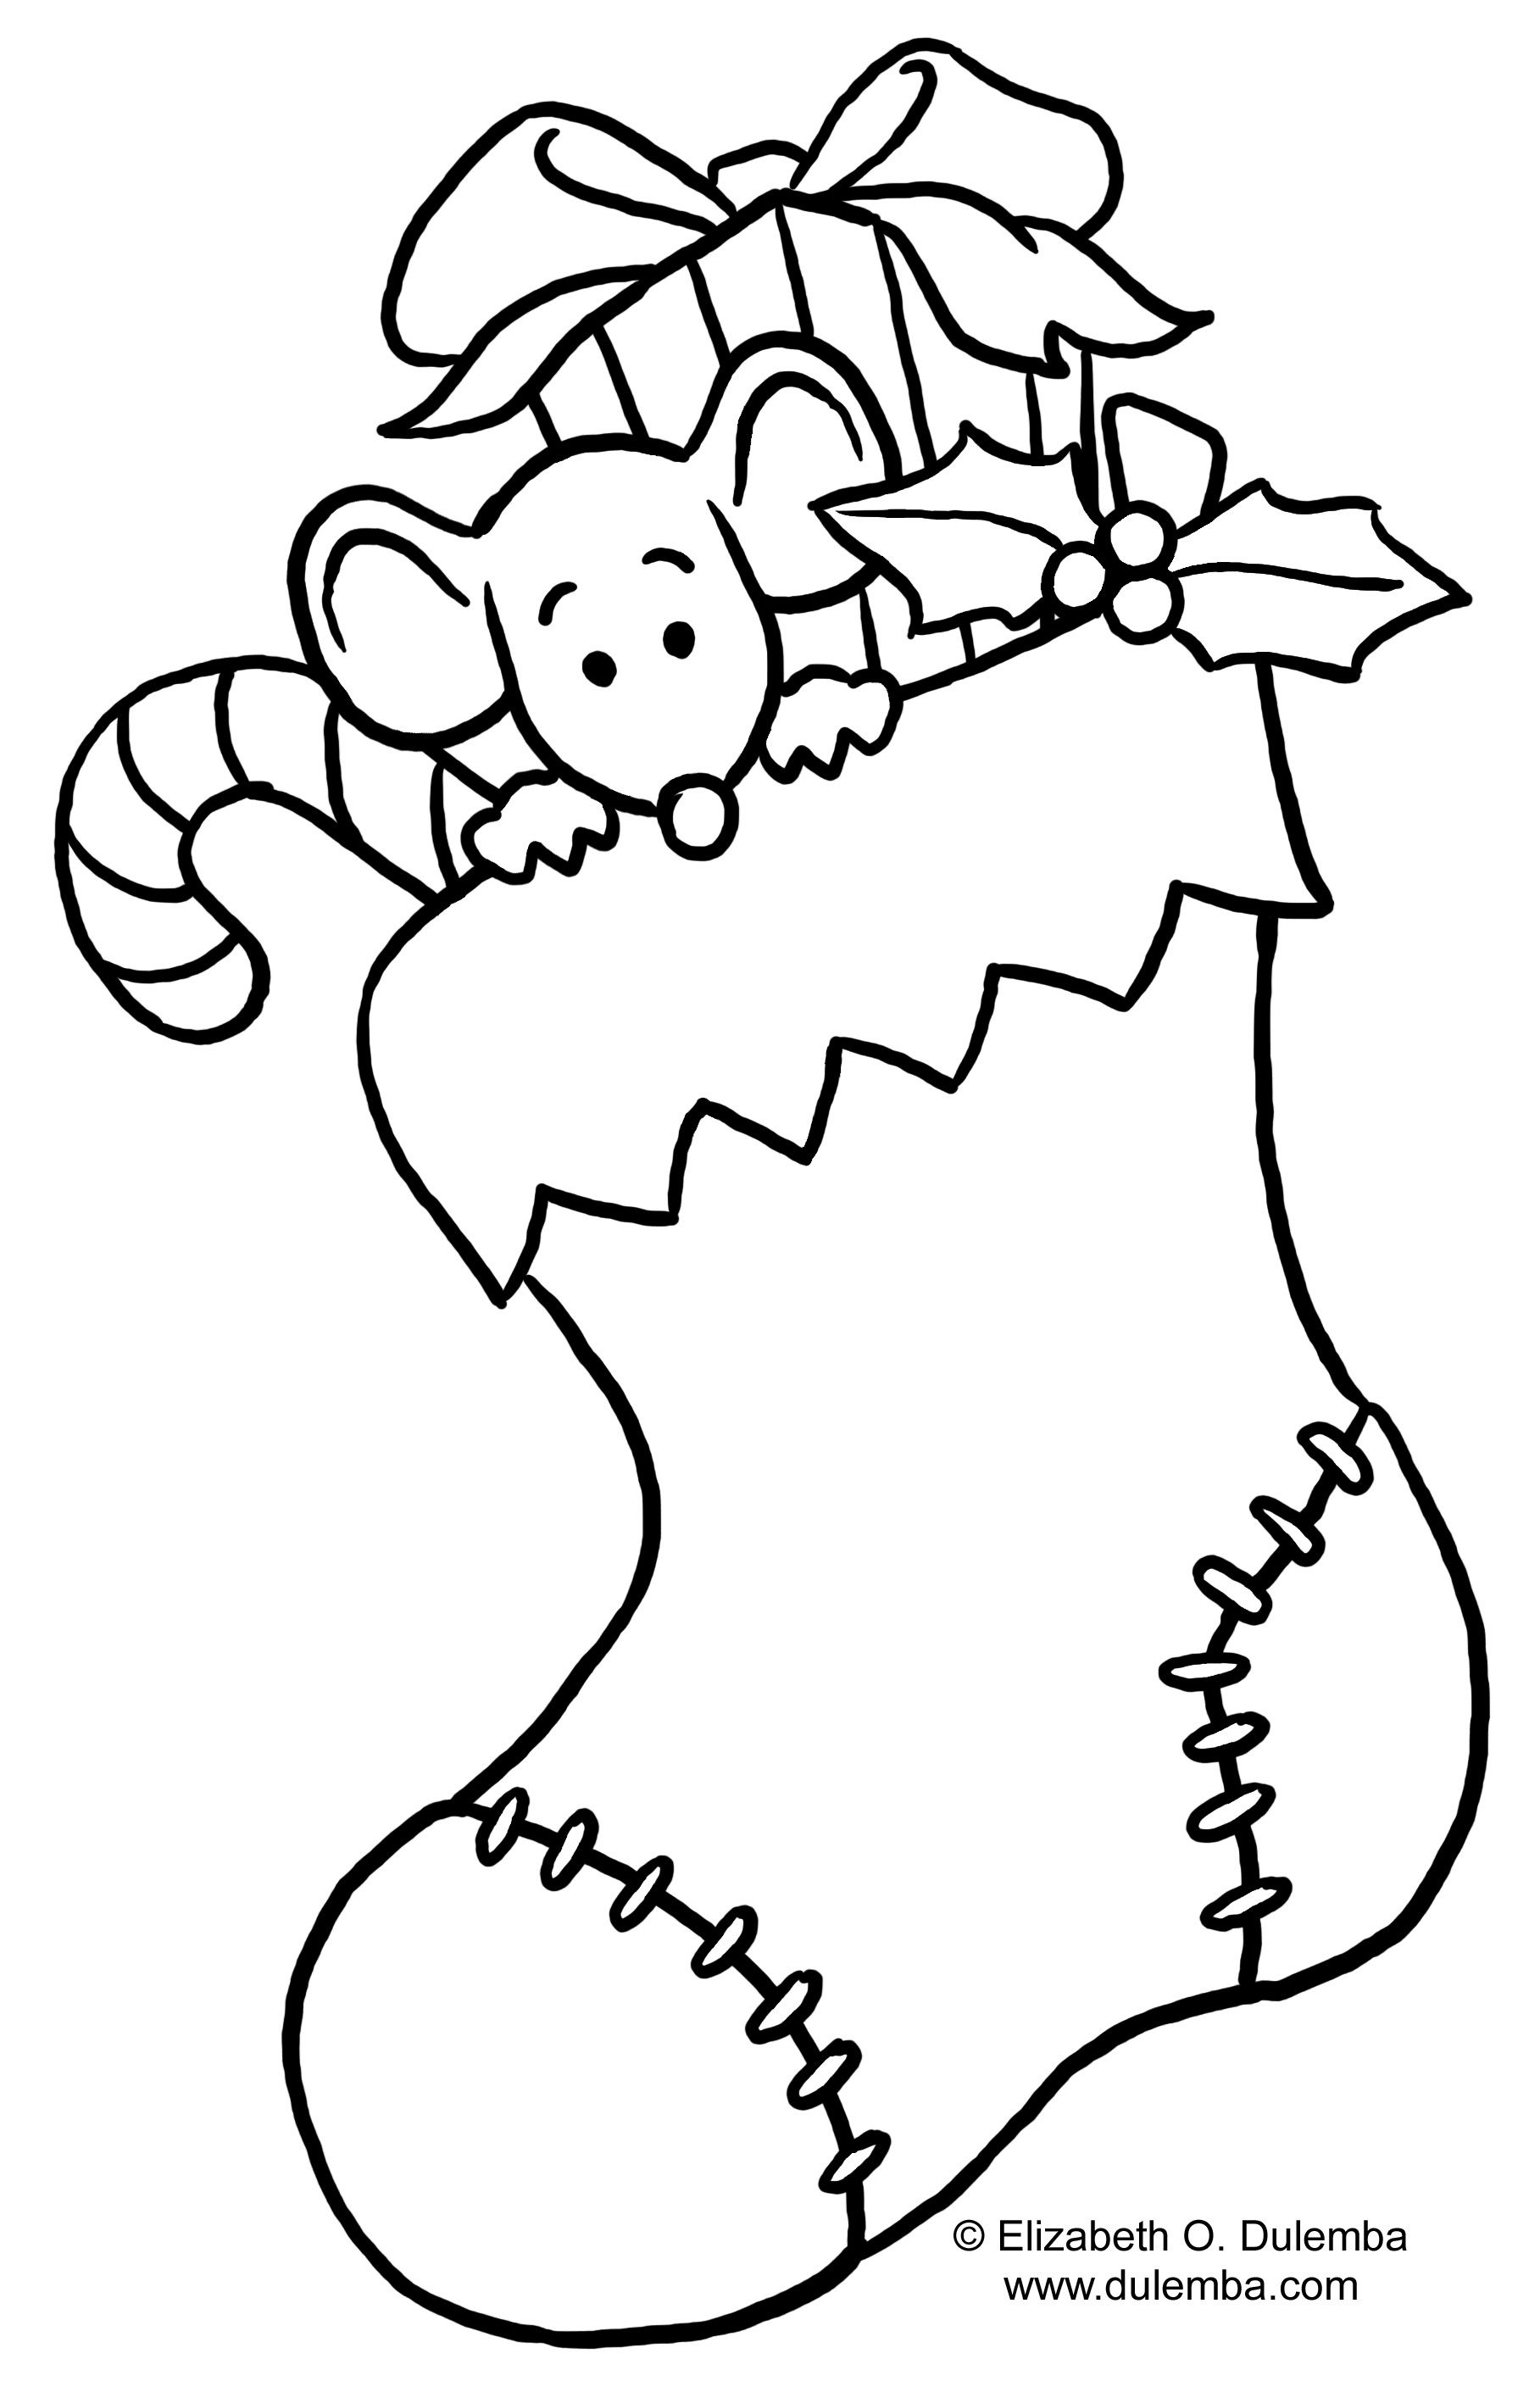 Pinjohanna Neal On Coloring Pages | Free Christmas Coloring - Xmas Coloring Pages Free Printable